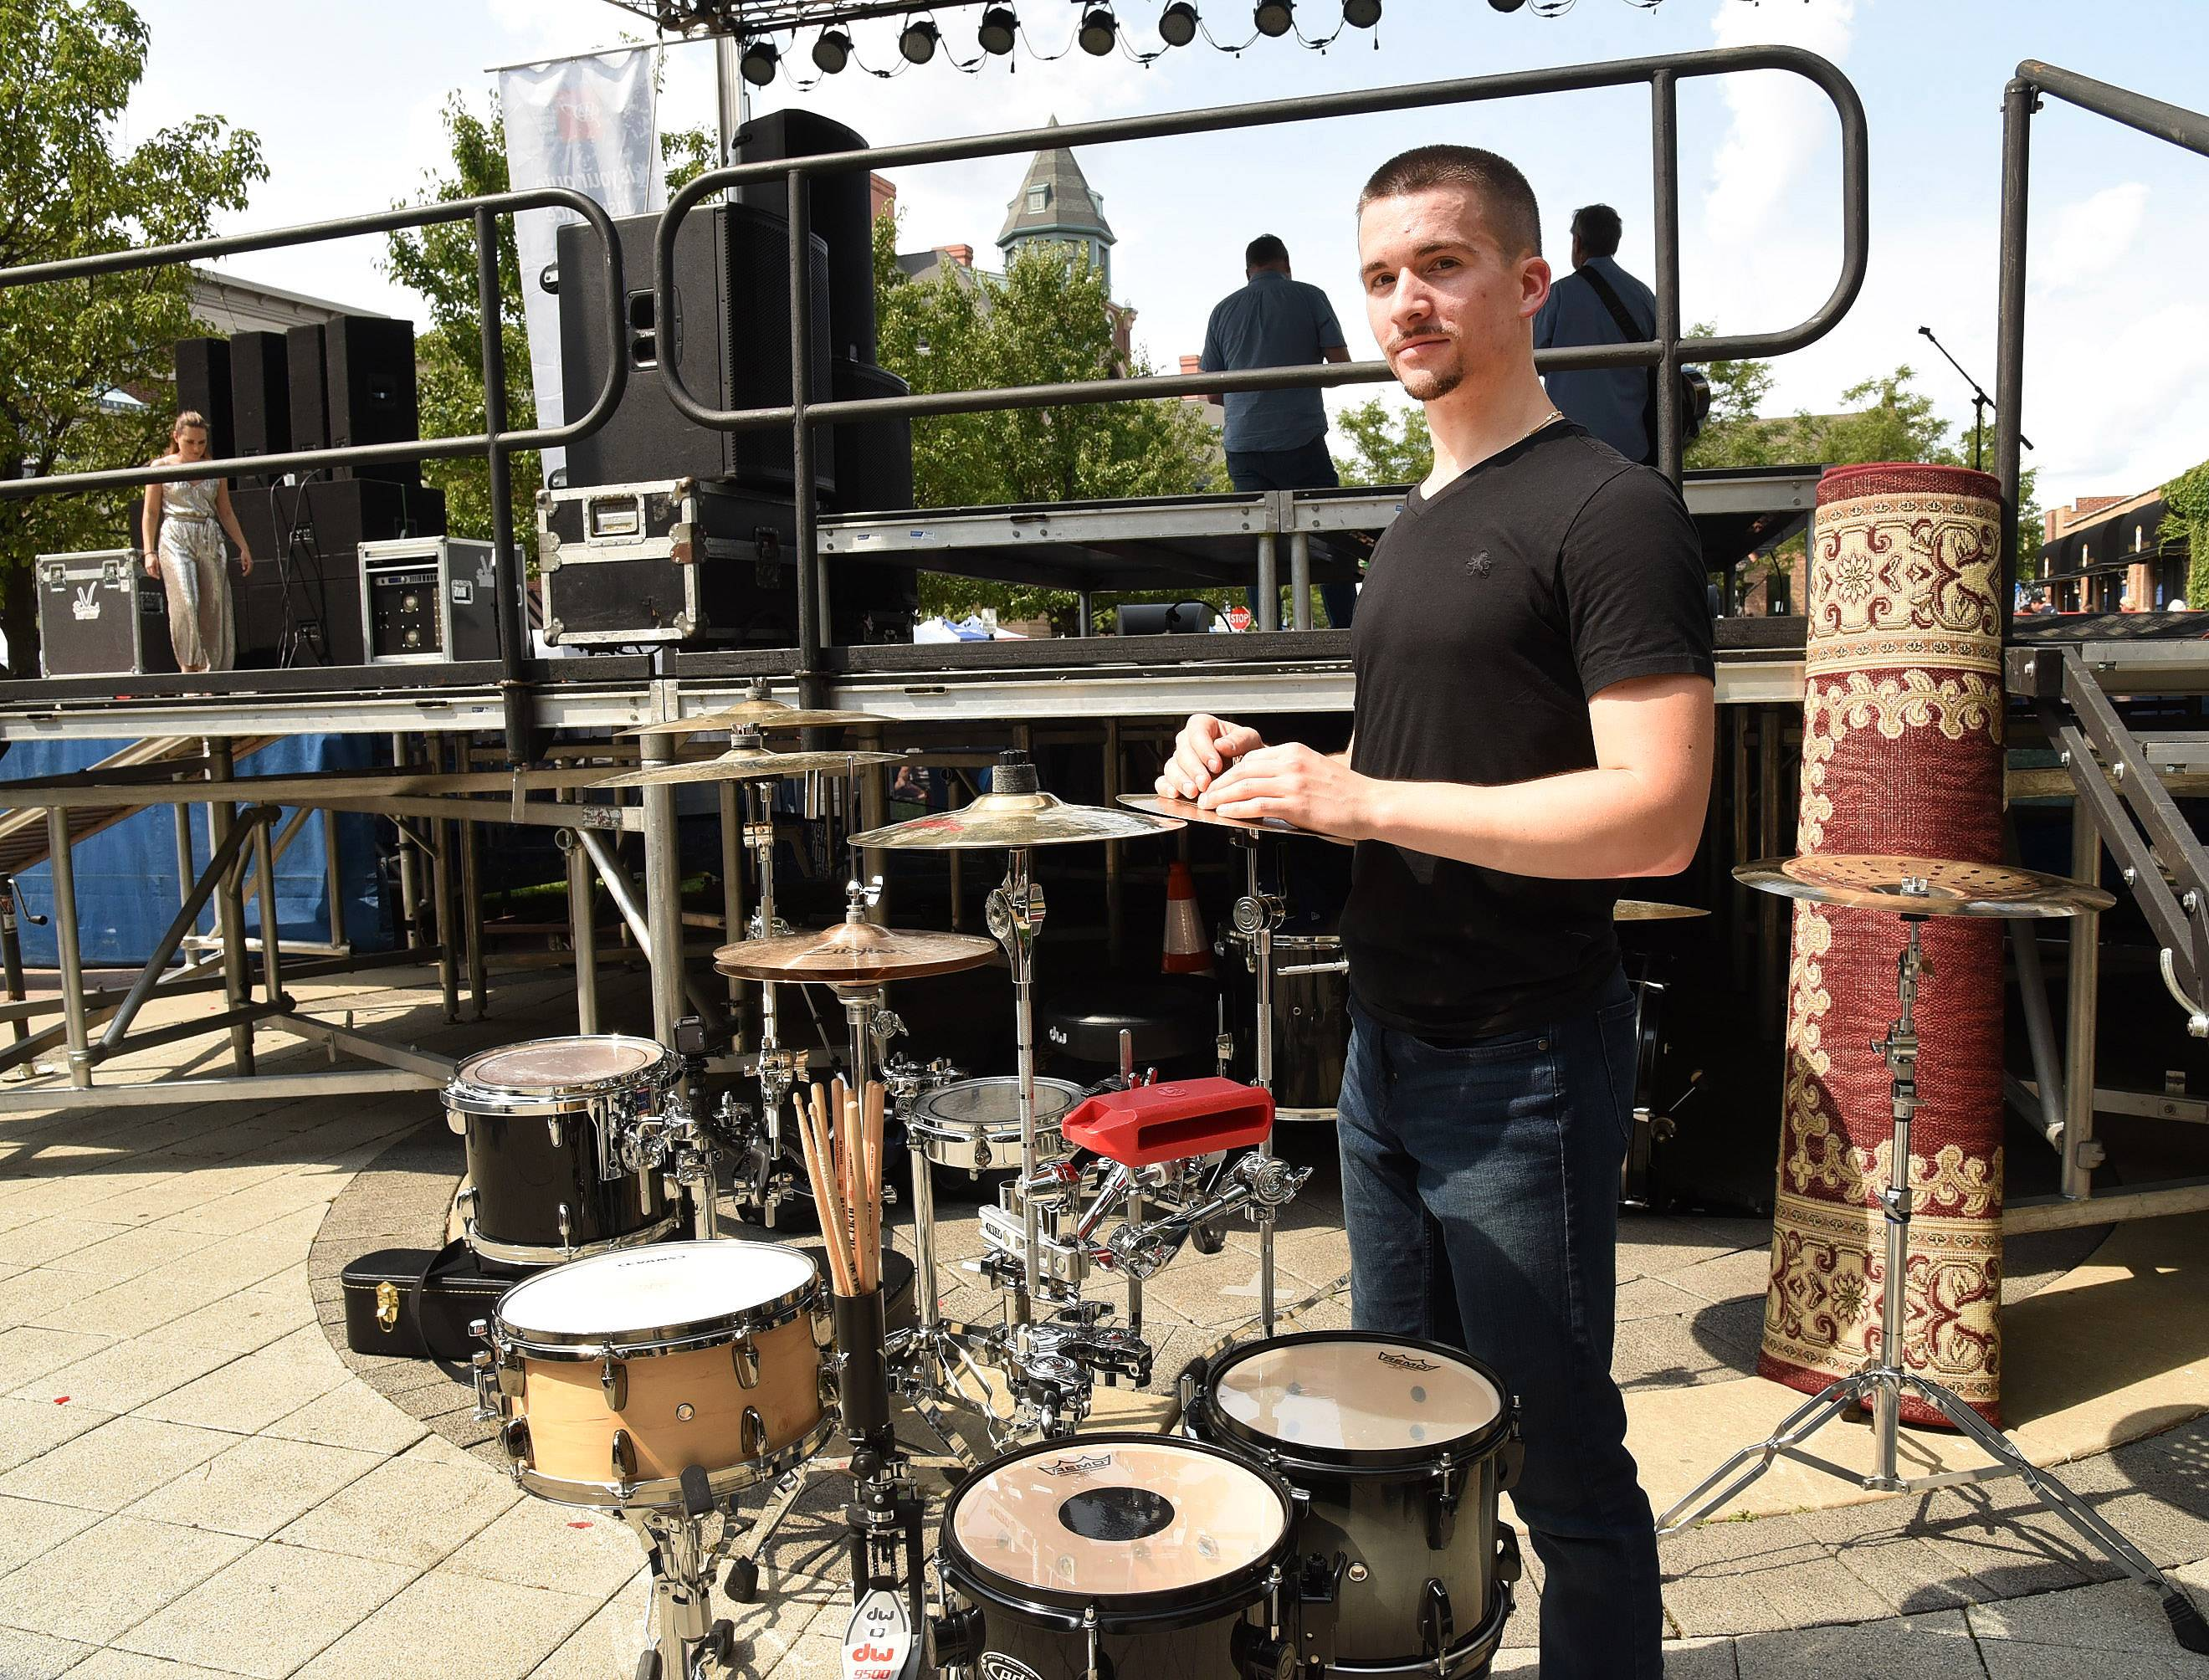 Adrian Guzik of Berwyn was the first drum soloist to make it to the top 10 of Suburban Chicago's Got Talent. He performed to a mashup of pop and heavy metal hits at the competition finale Saturday at the Taste of Arlington Heights.